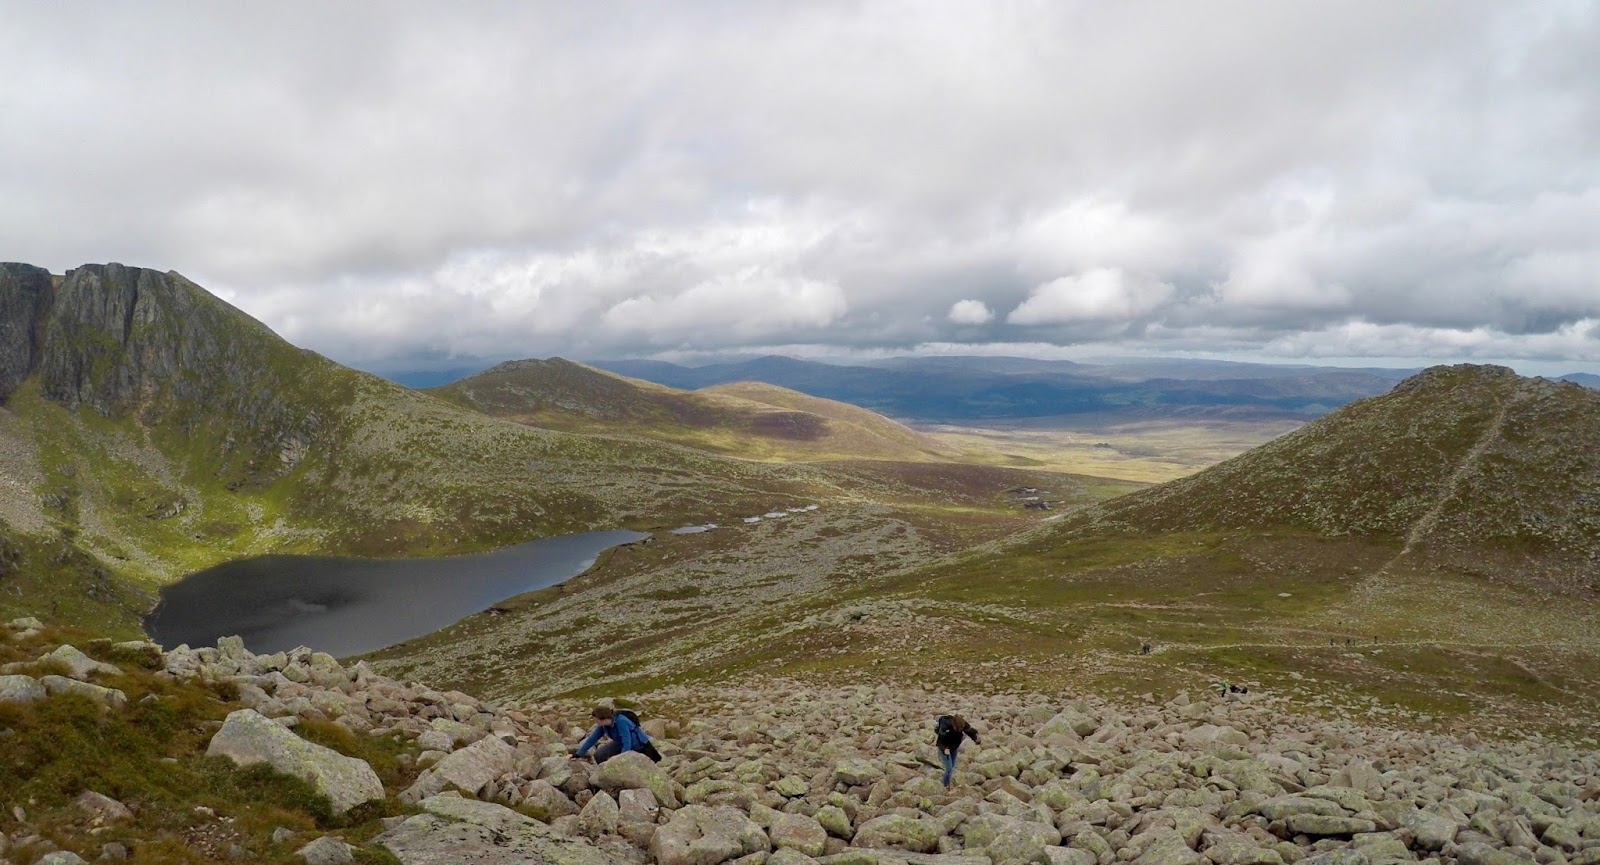 Loch at the top of Lochnagar Munro - Cal McTravel - www.calmctravels.com